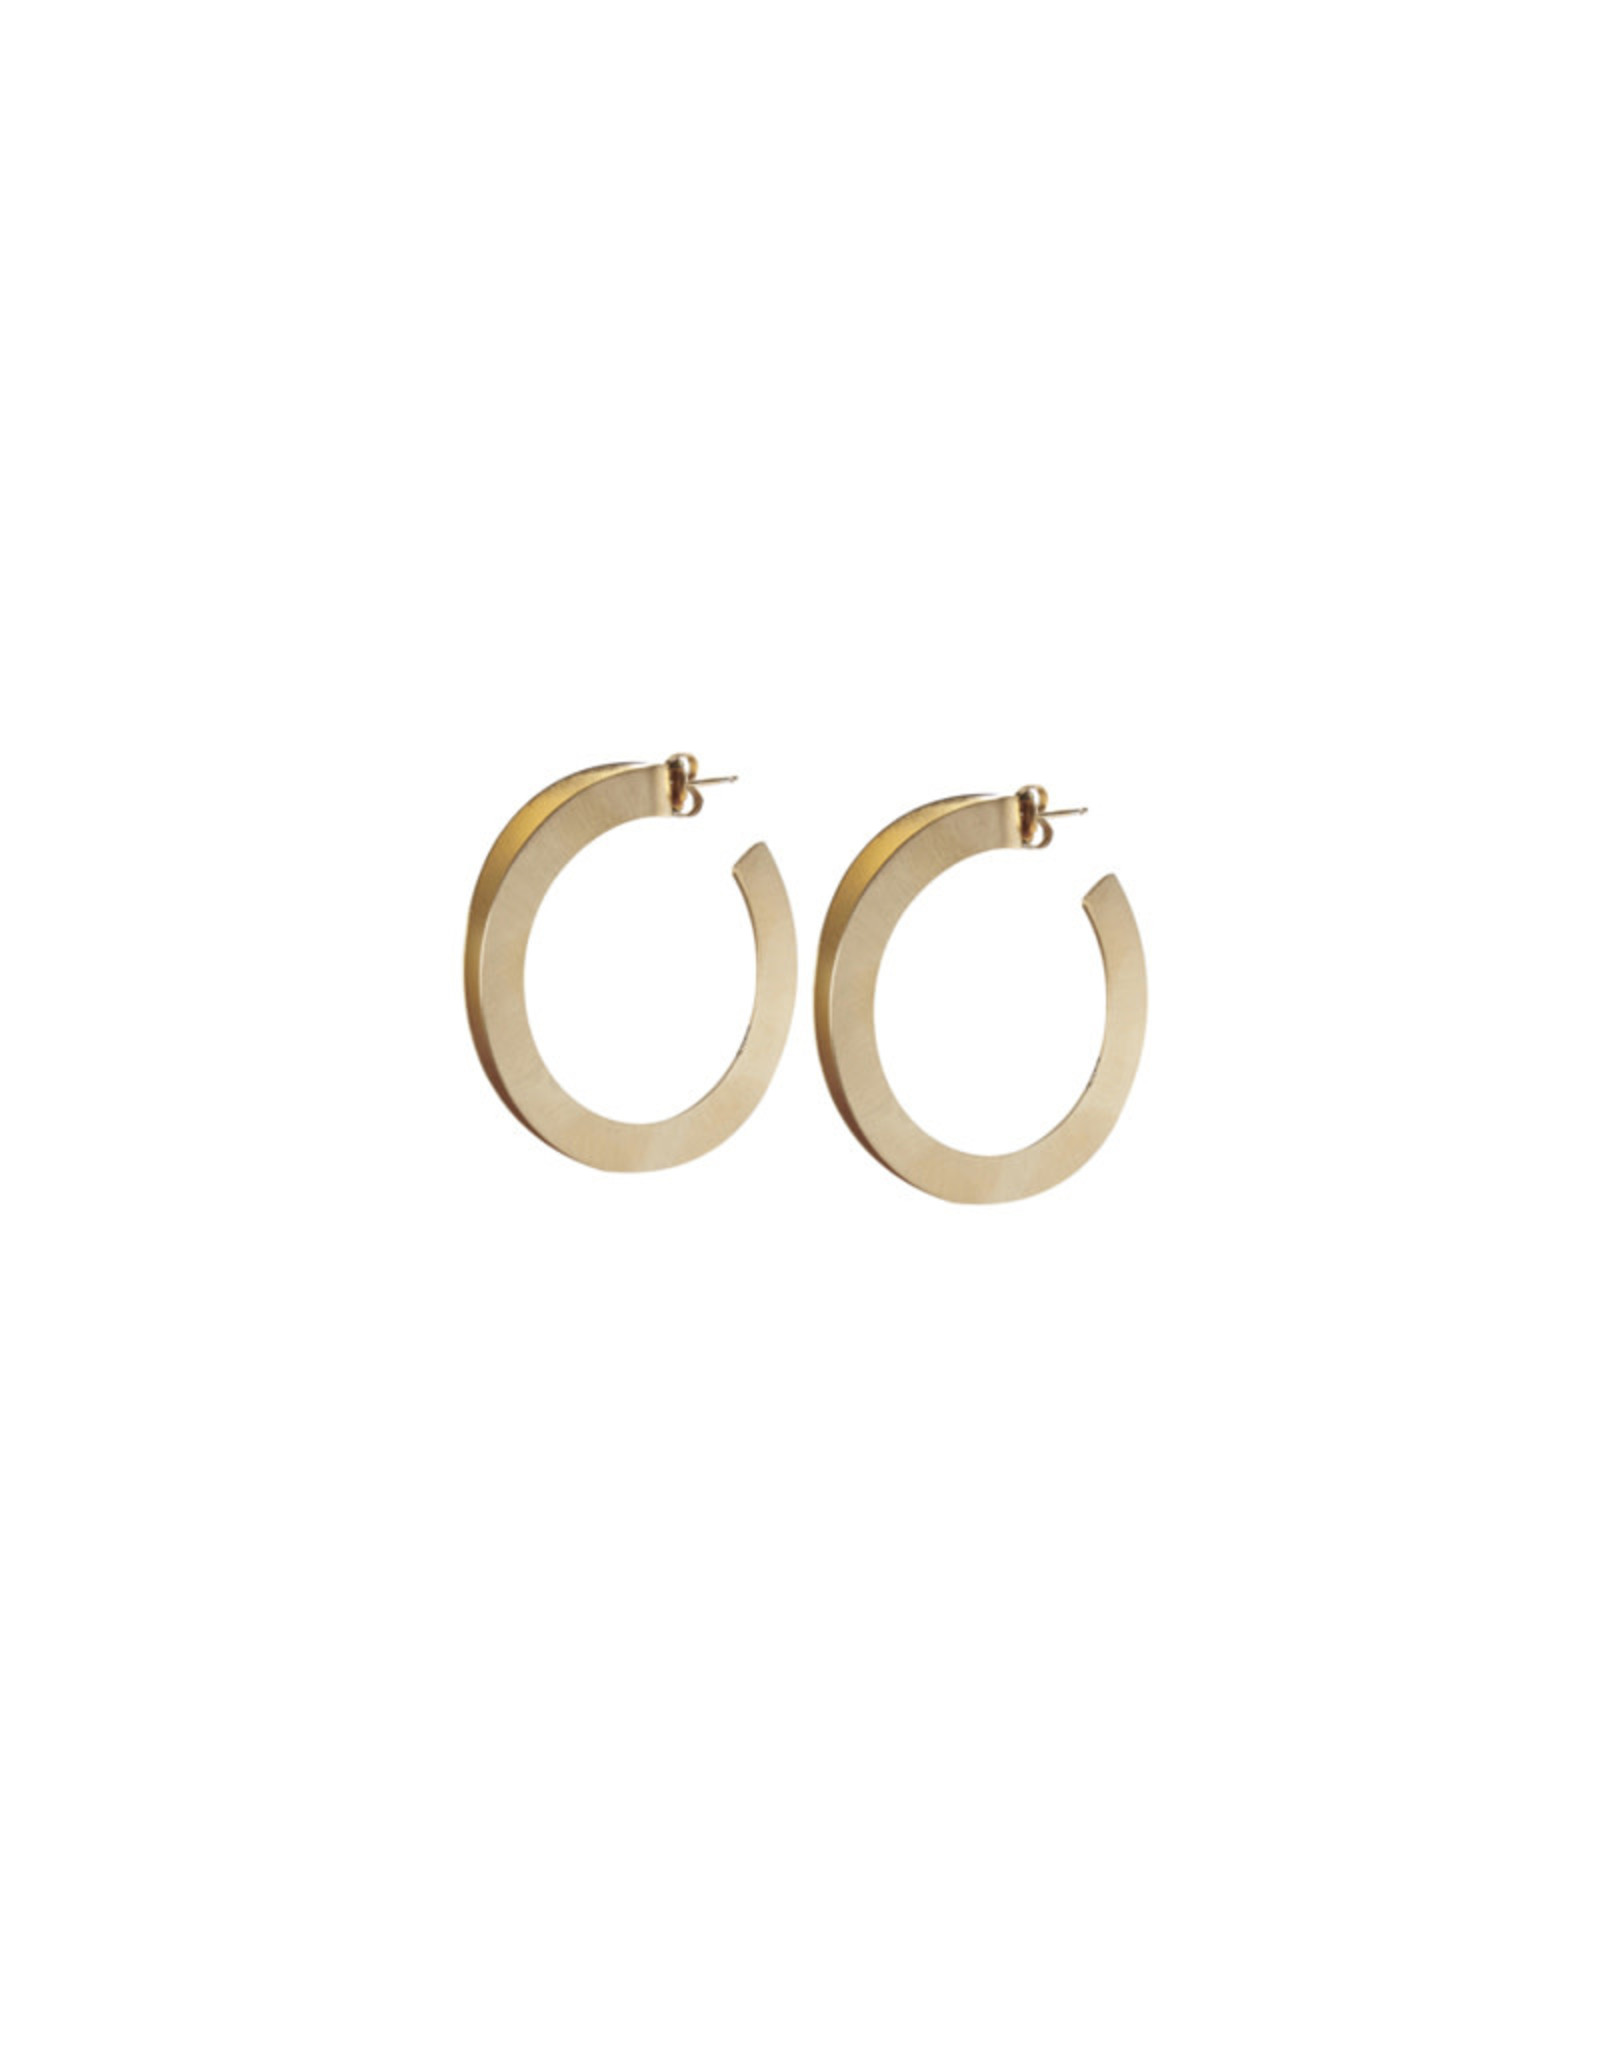 CATH.S CATH.S EARRINGS BRONZE DOUBLE RING